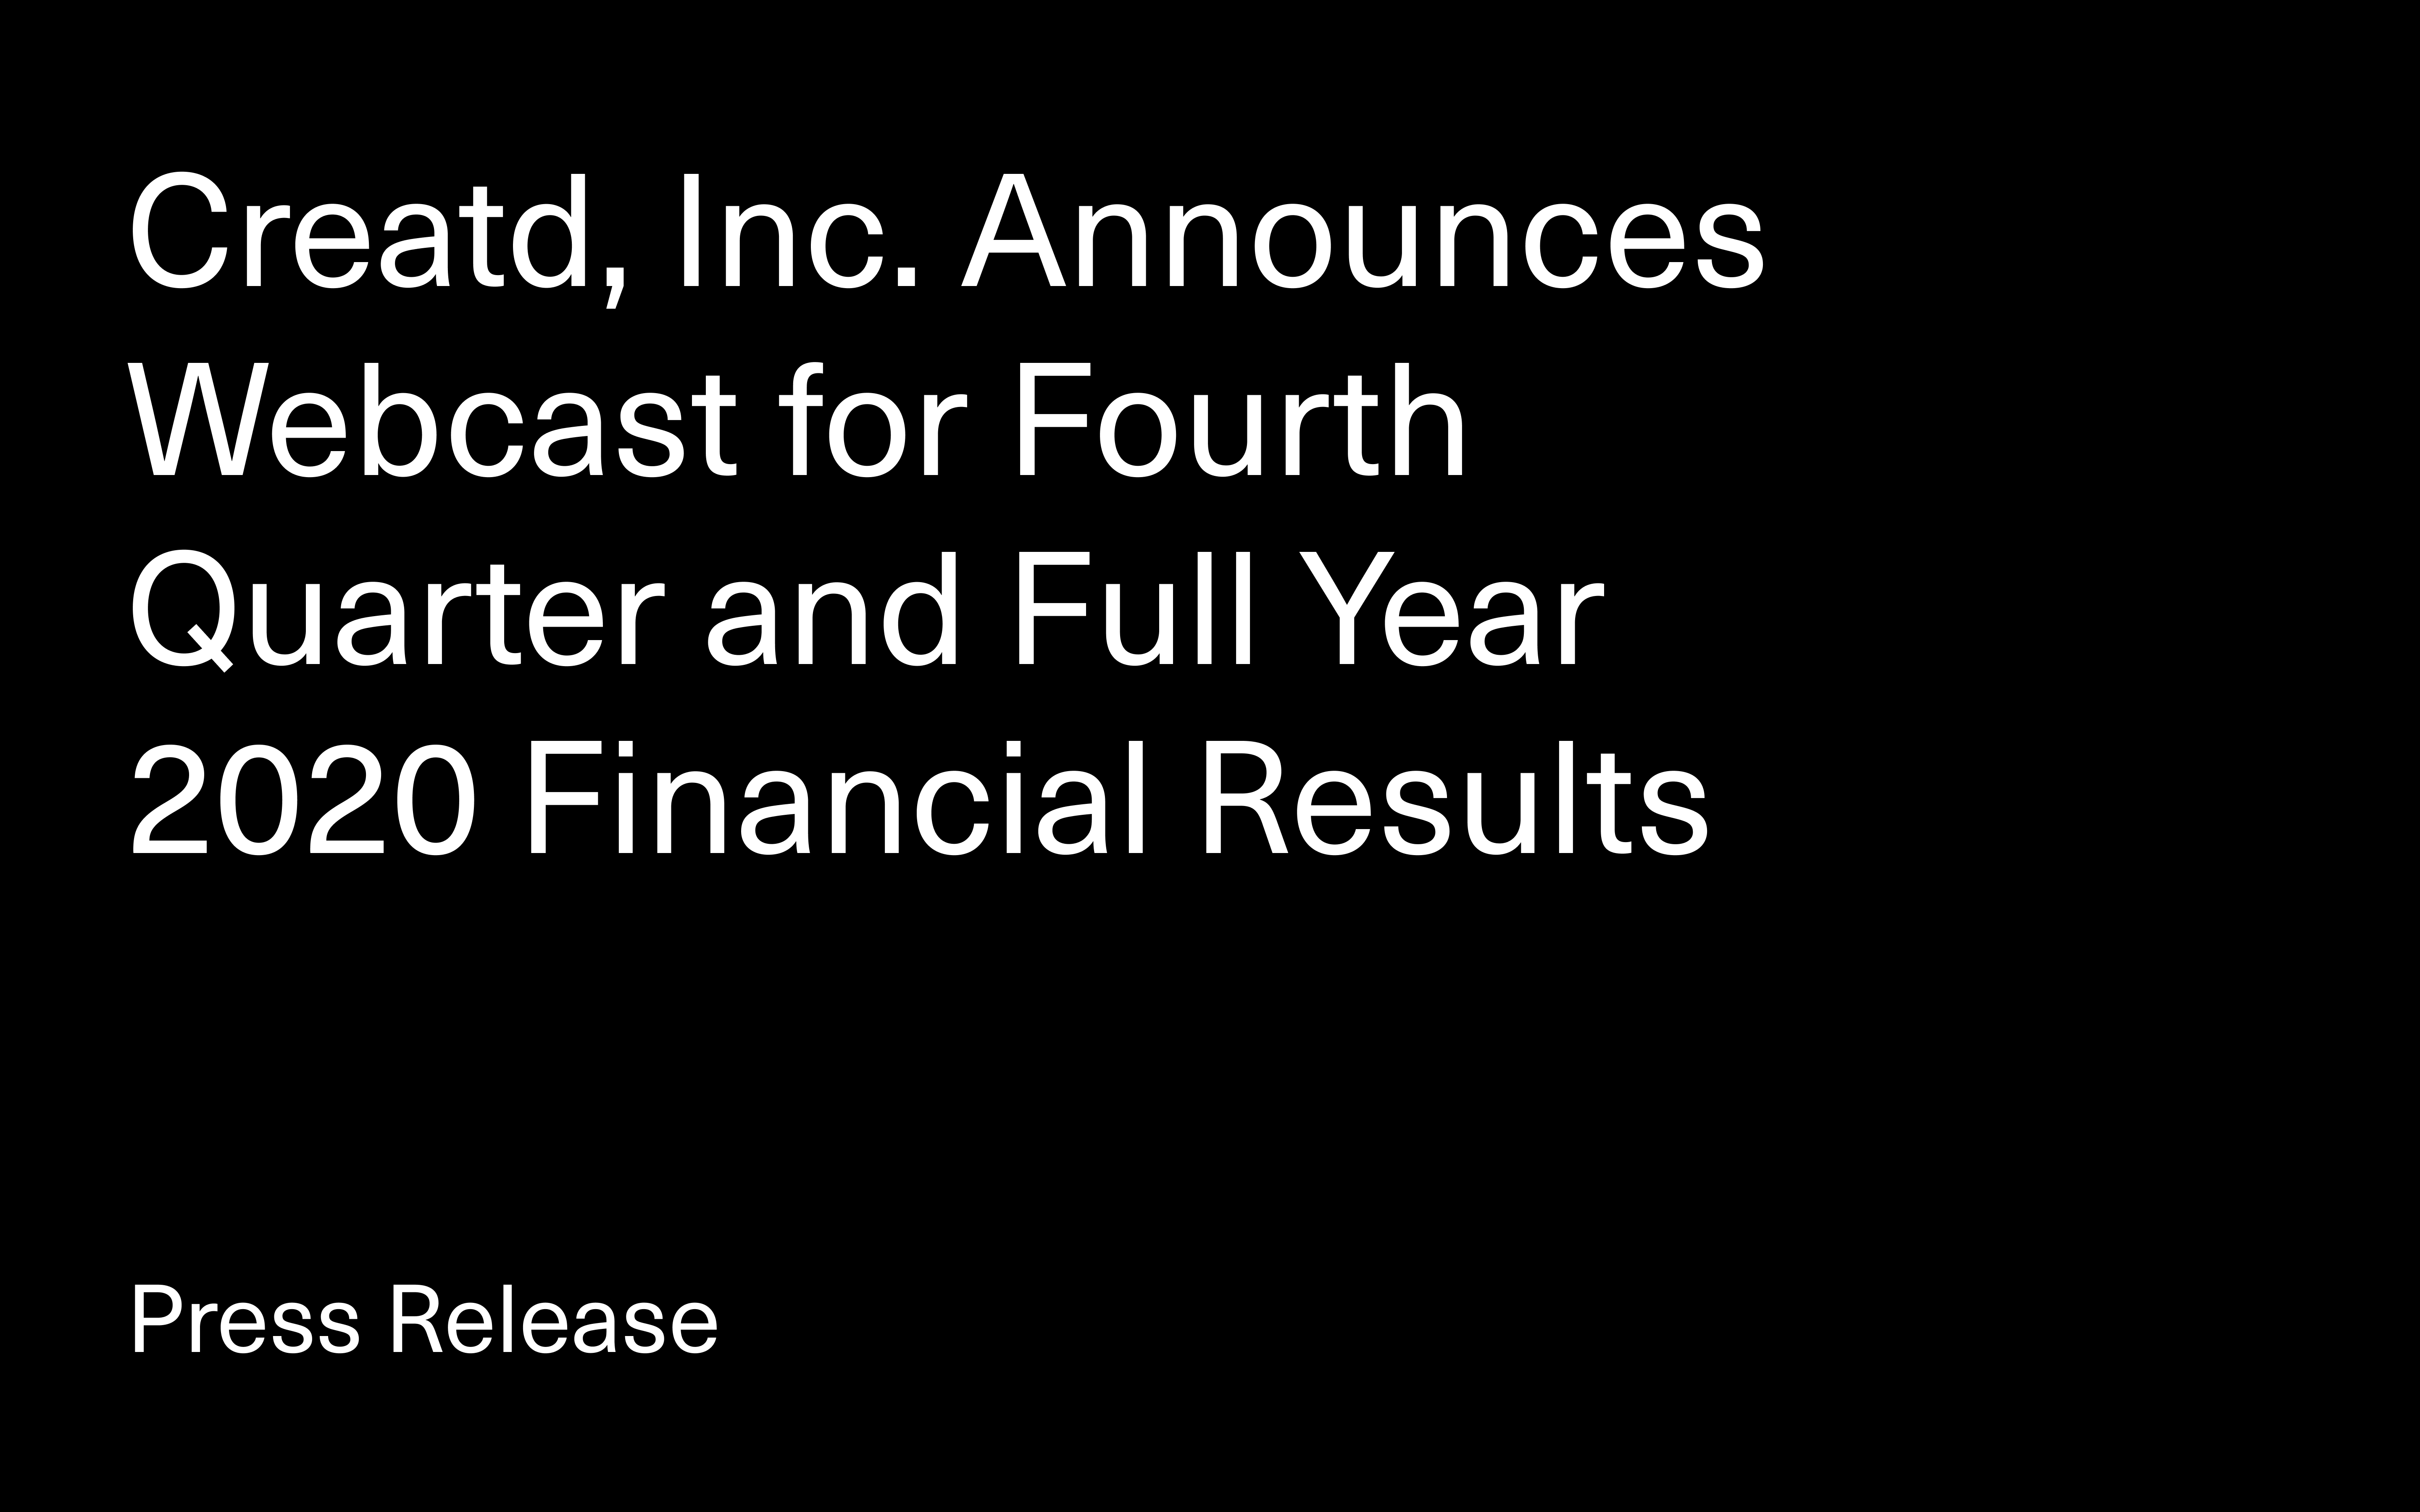 Creatd, Inc. Announces Webcast for Fourth Quarter and Full Year 2020 Financial Results